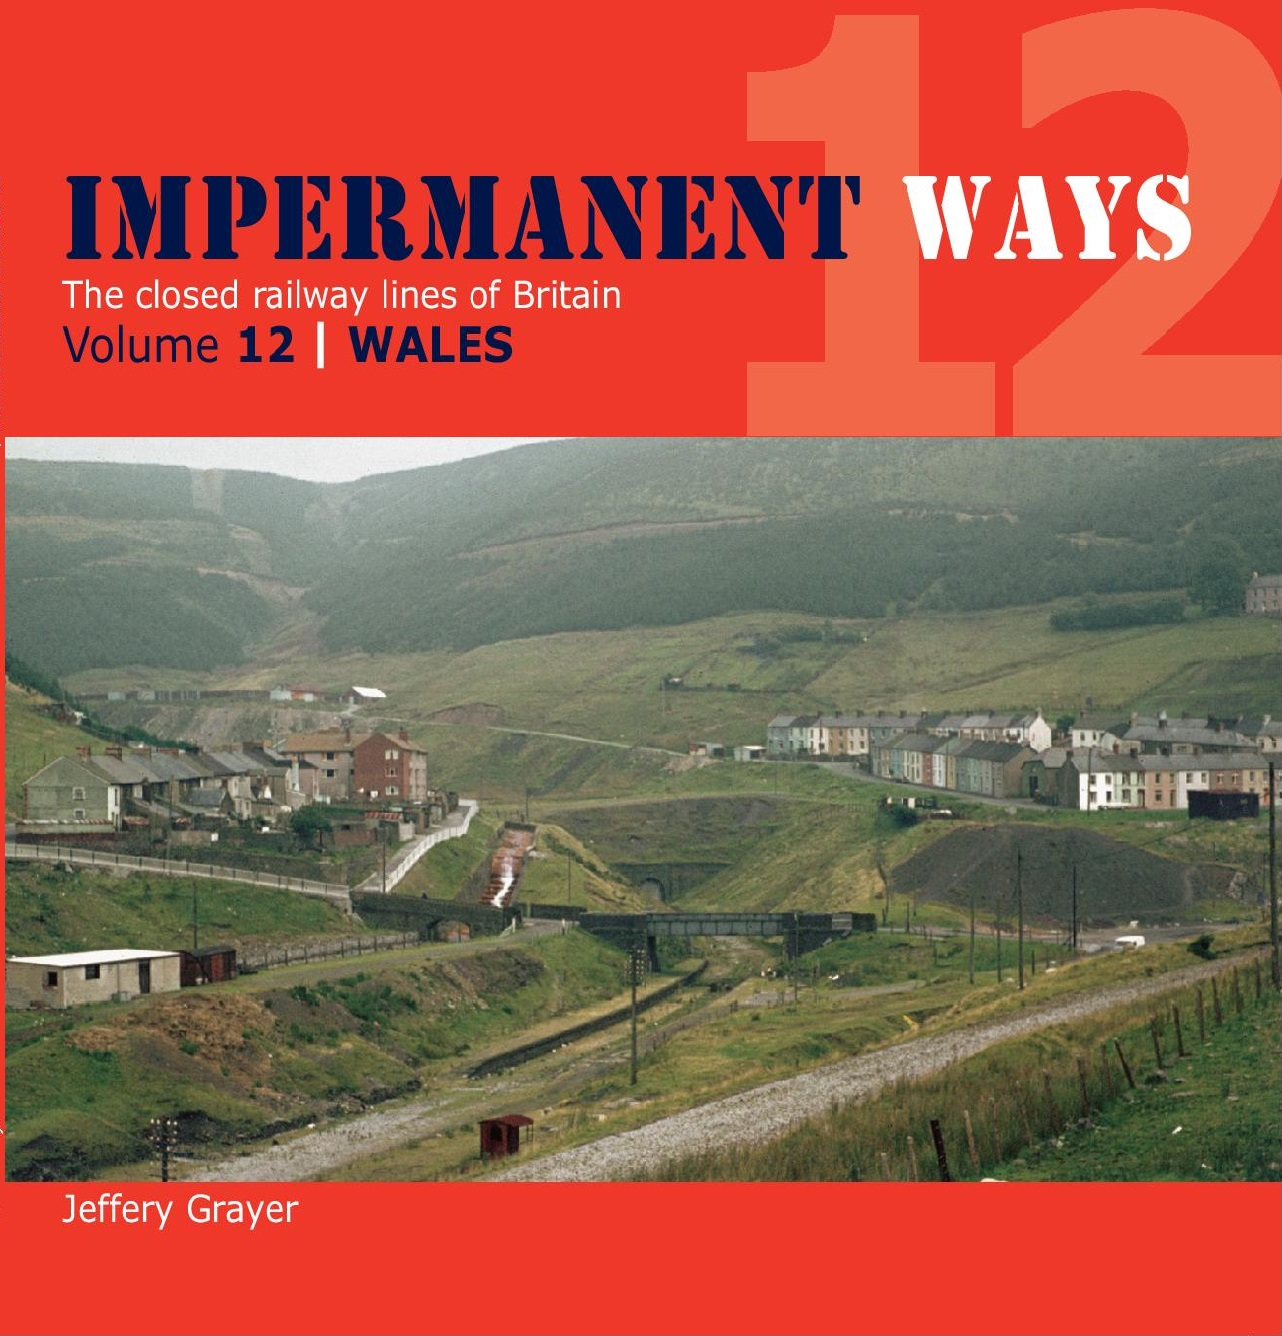 Impermanent Ways Volume 12 - Wales